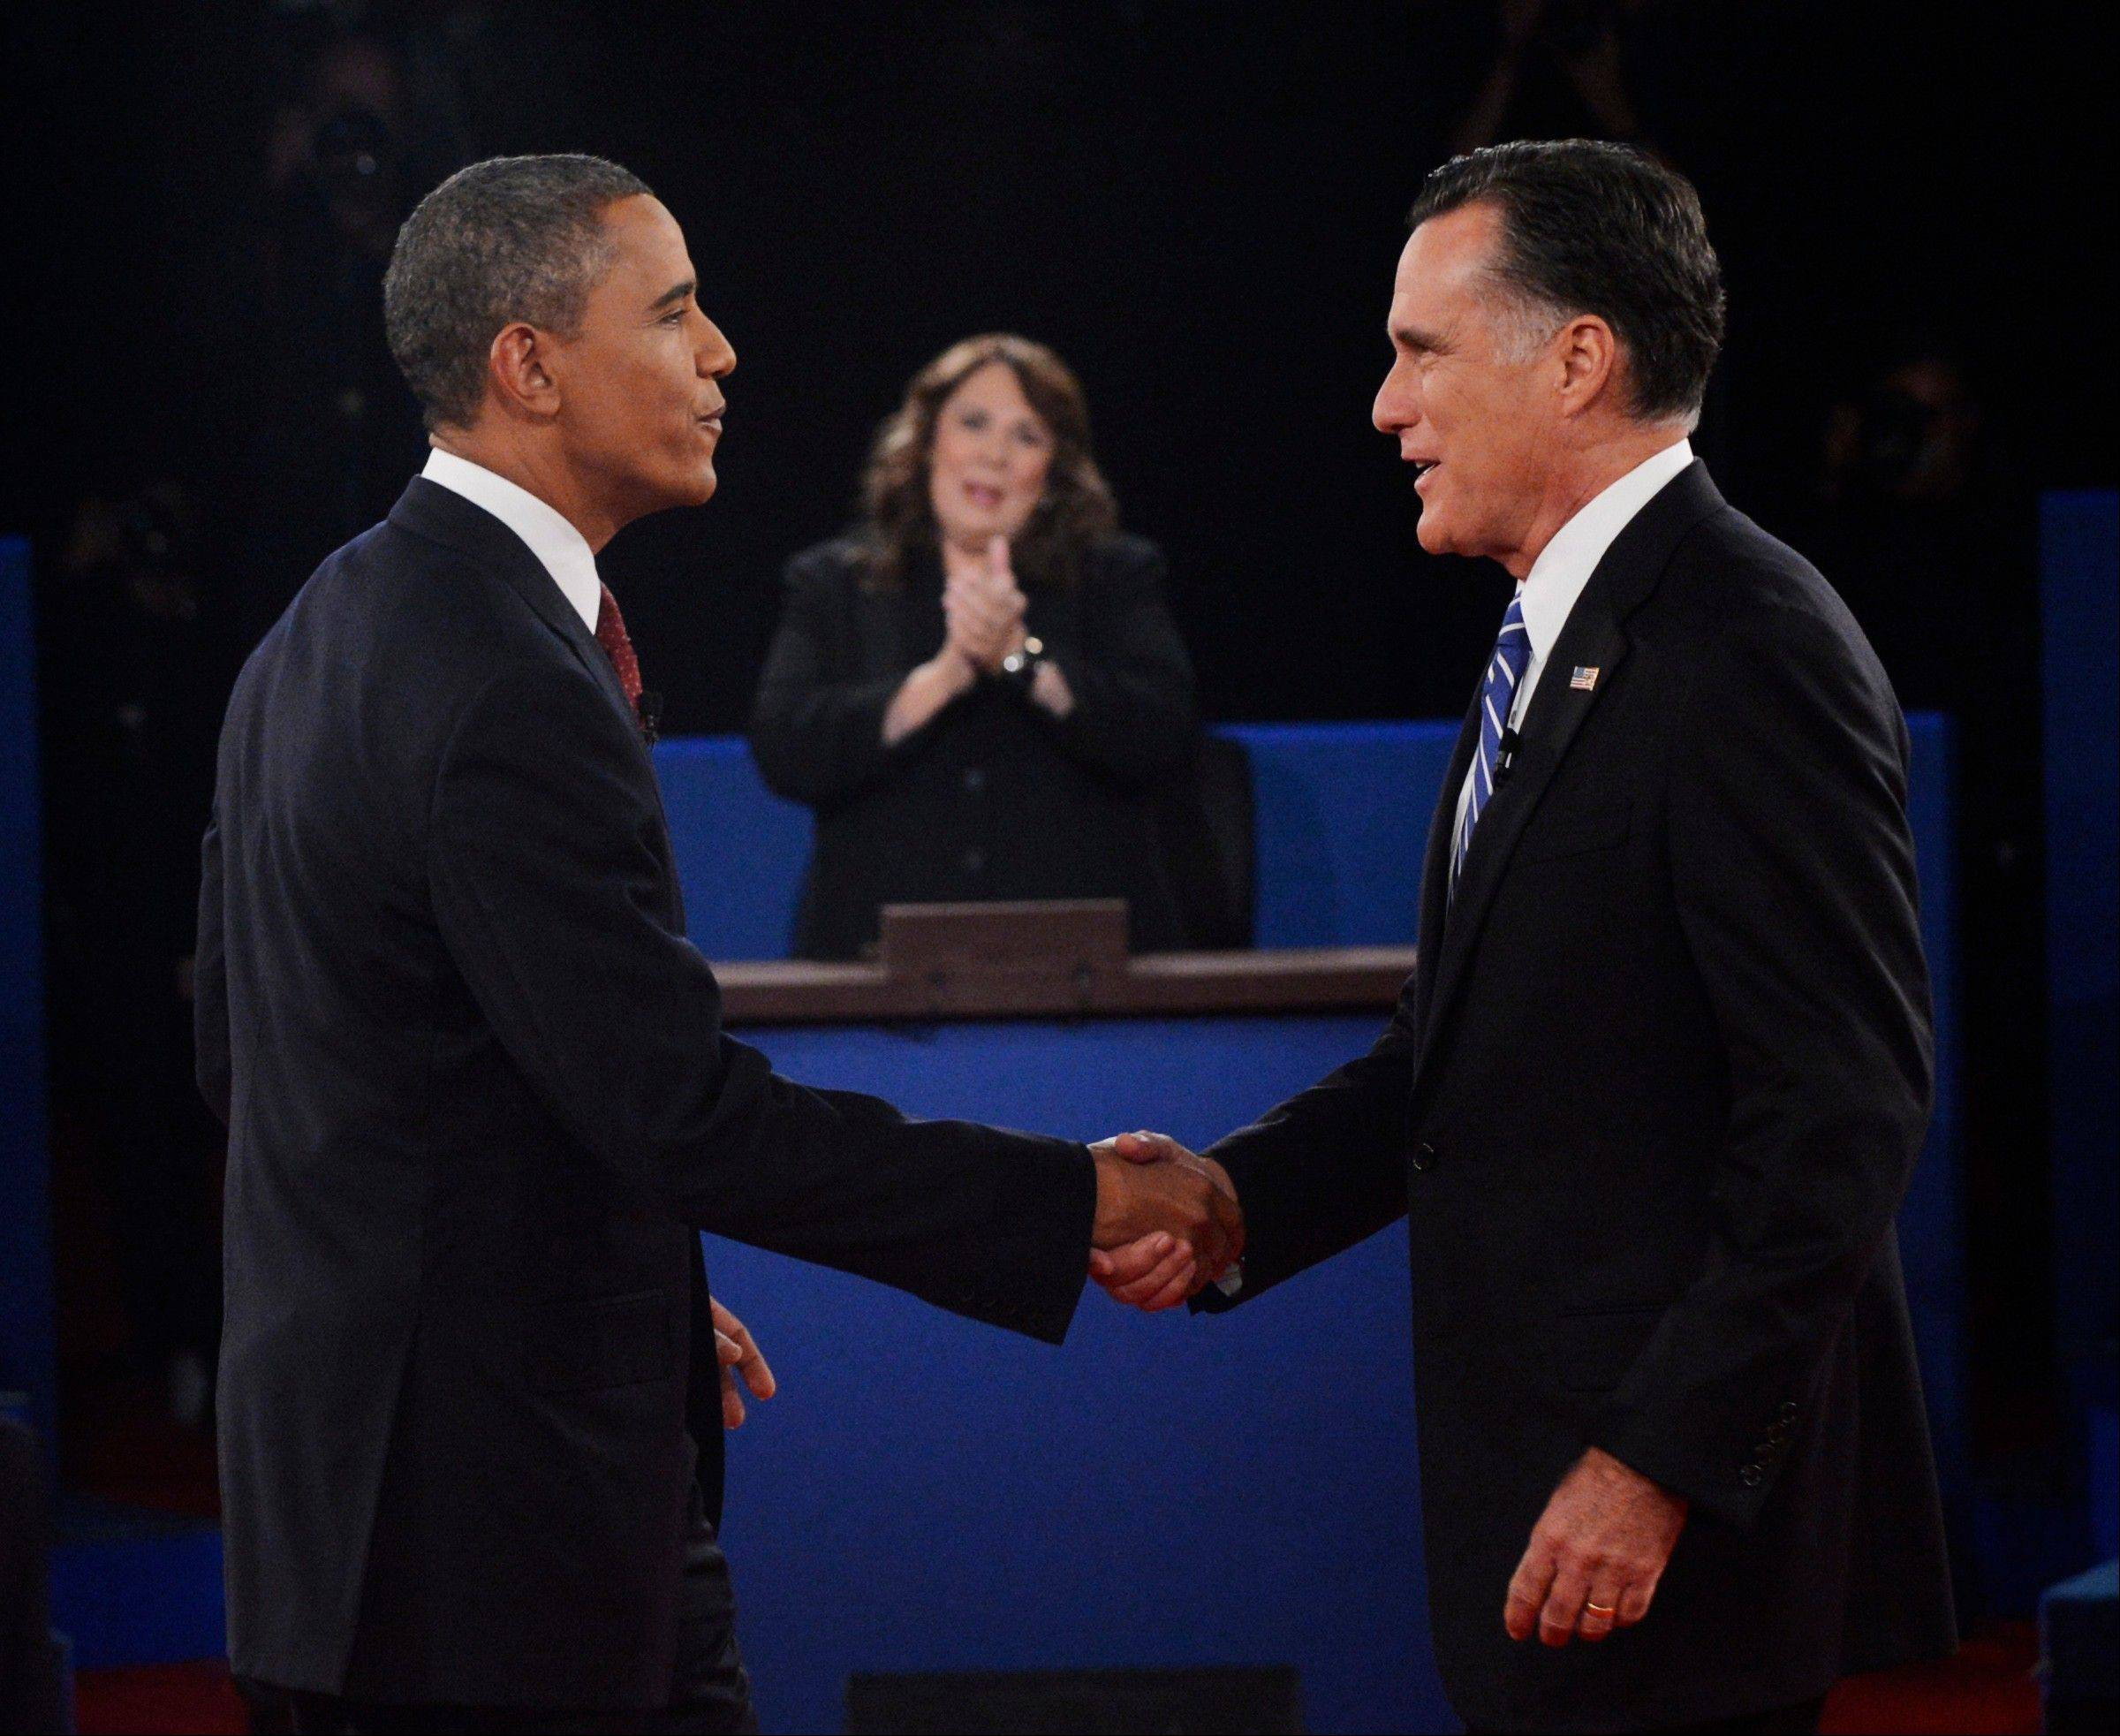 Moderator Candy Crowley, center, applauds as President Barack Obama, right, shakes hands with Republican presidential nominee Mitt Romney during the second presidential debate Tuesday at Hofstra University in Hempstead, N.Y.